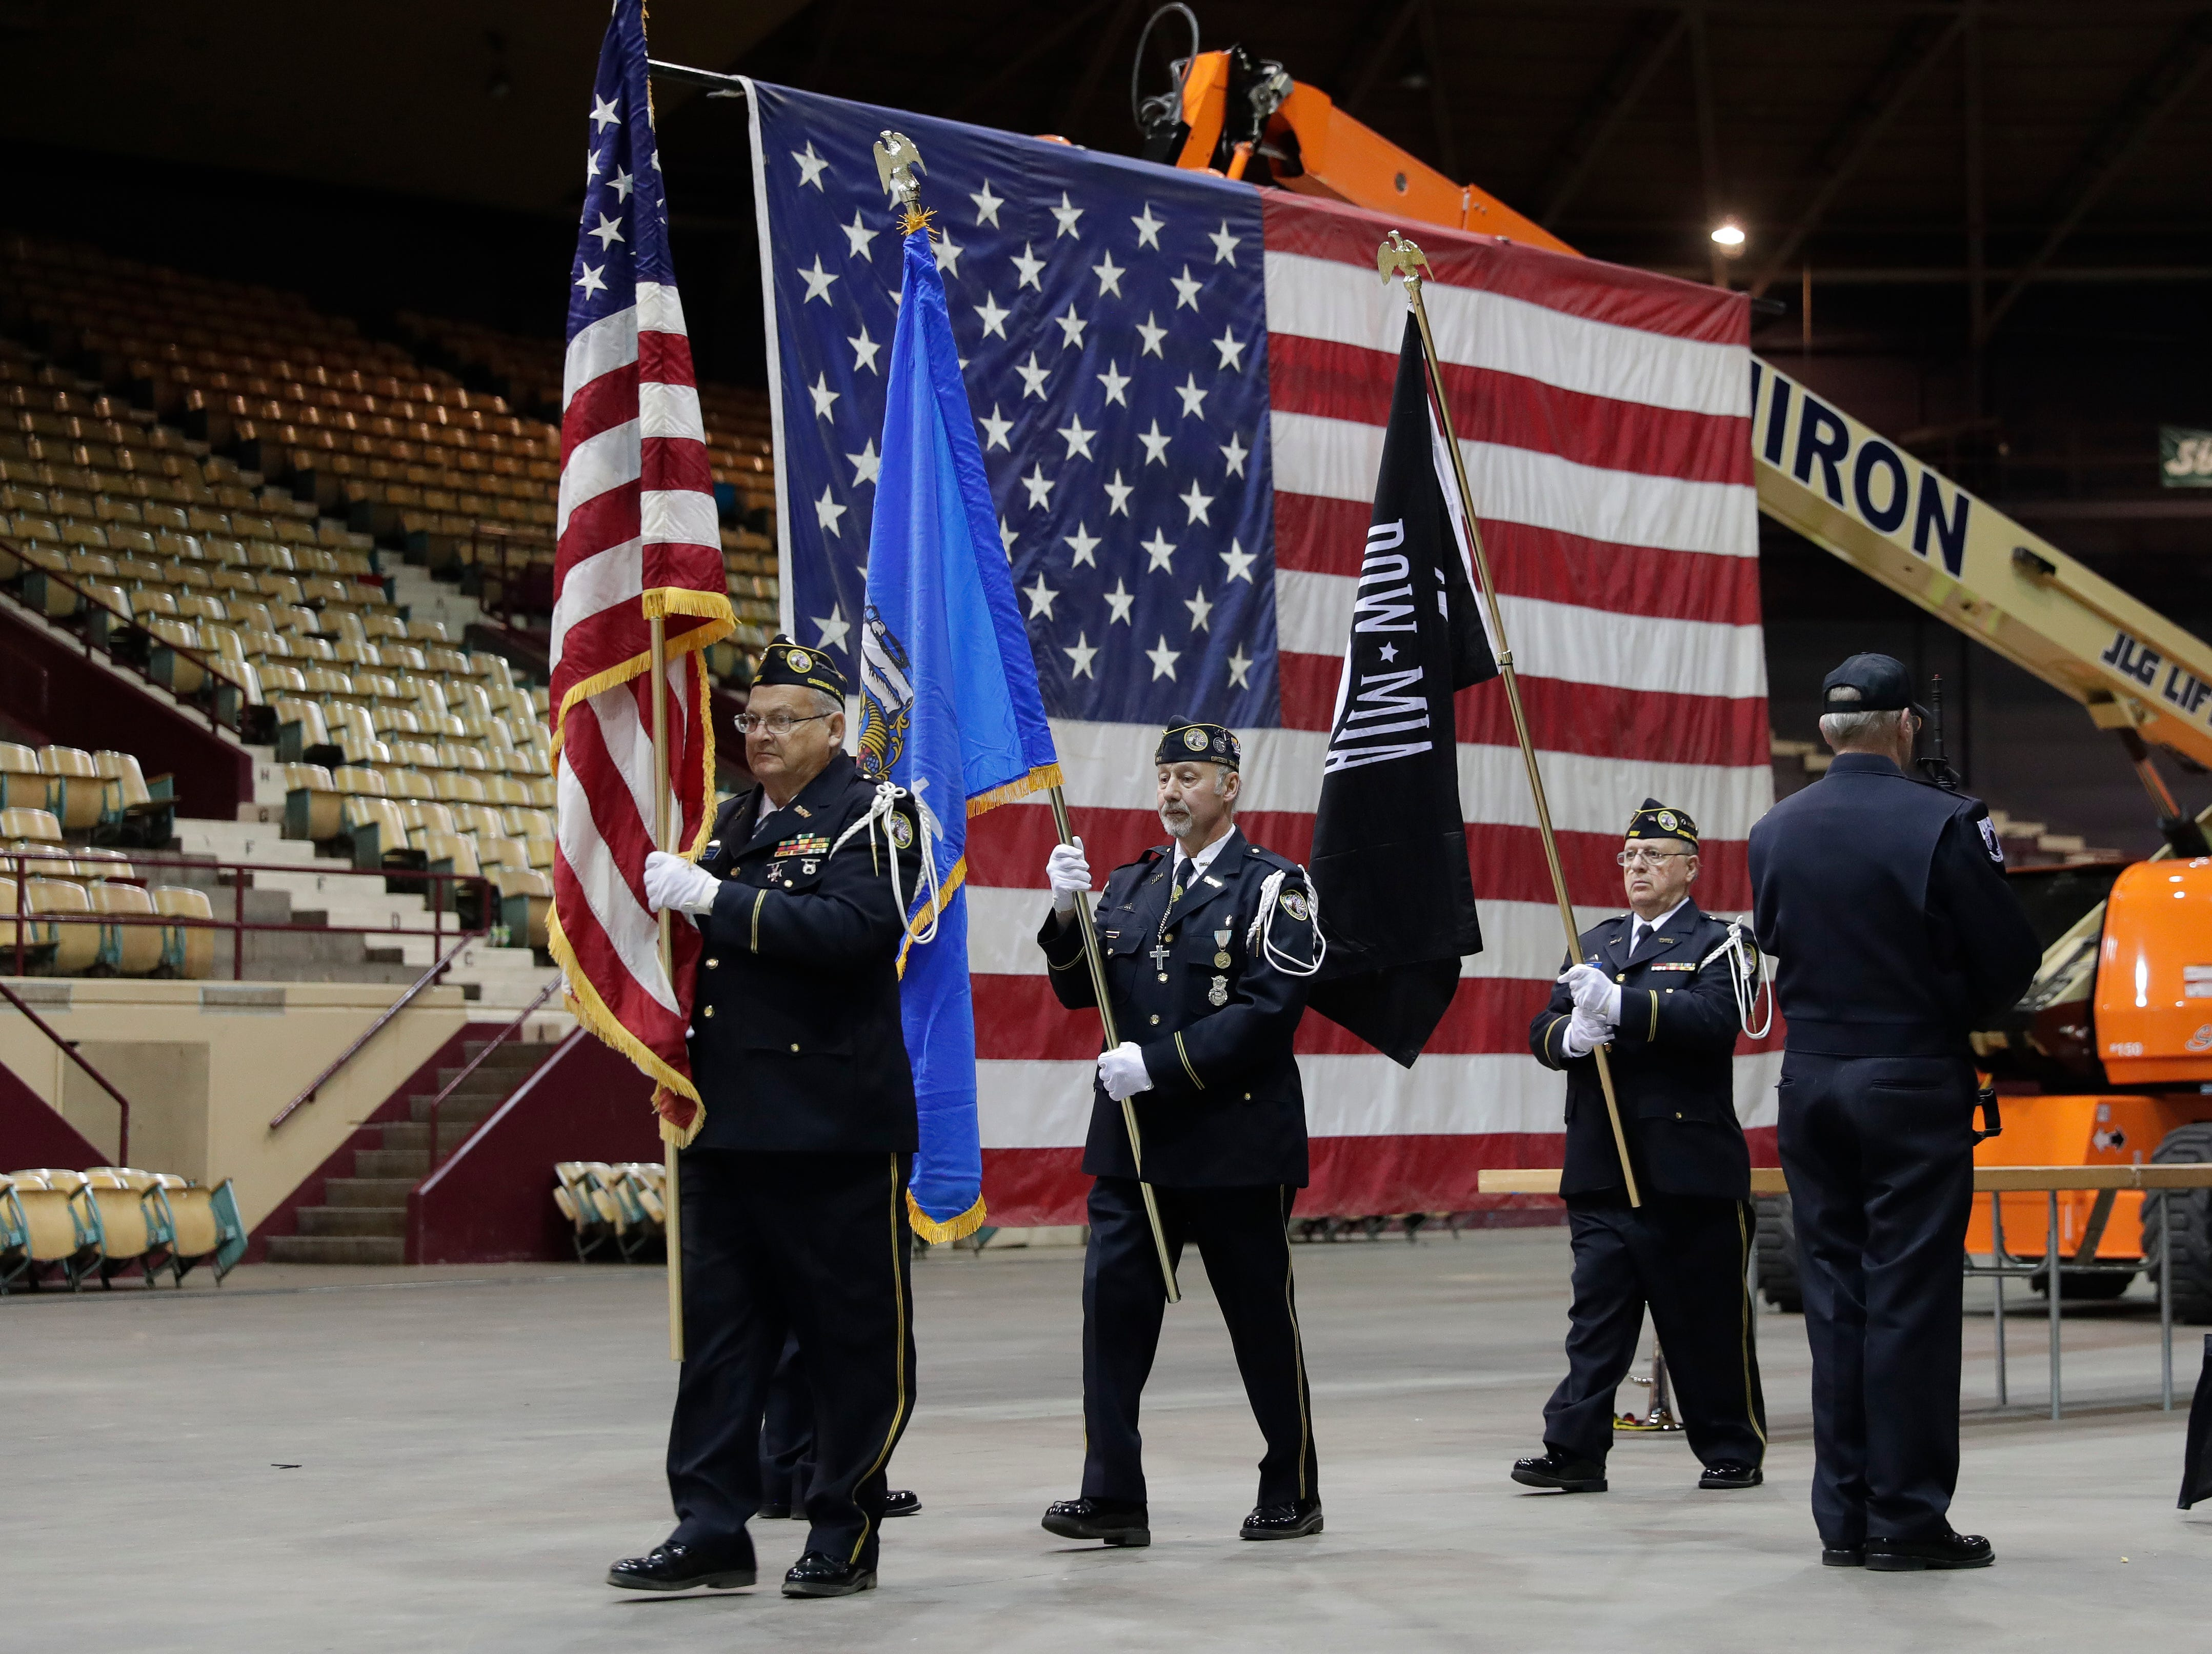 A farewell ceremony was held April 29, 2019 inside the Brown County Veterans Memorial Arena before demolition of the building begins.